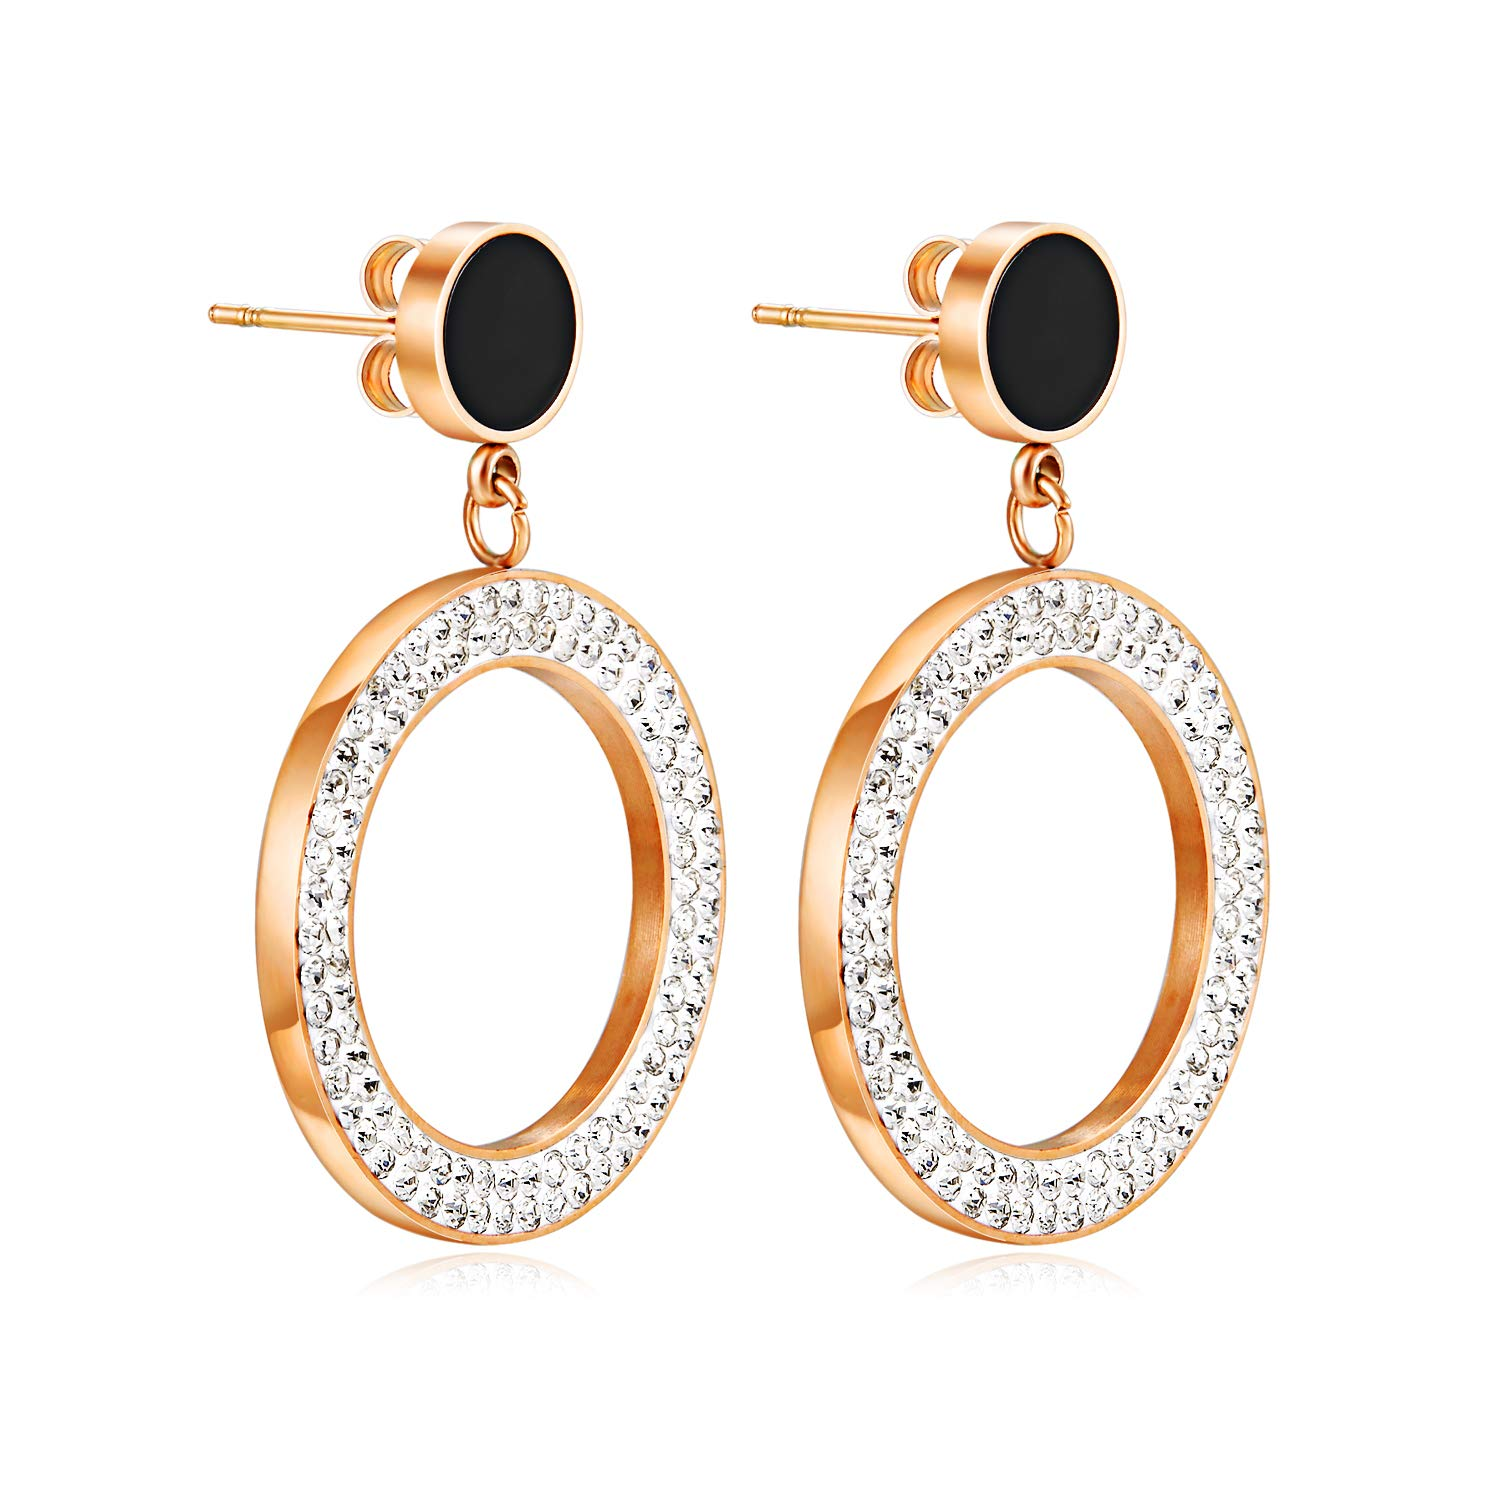 Vanski Rose Gold Stainless Steel Geometric Drop Earrings Cubic Zirconia Acrylic Earrings for Women Girls